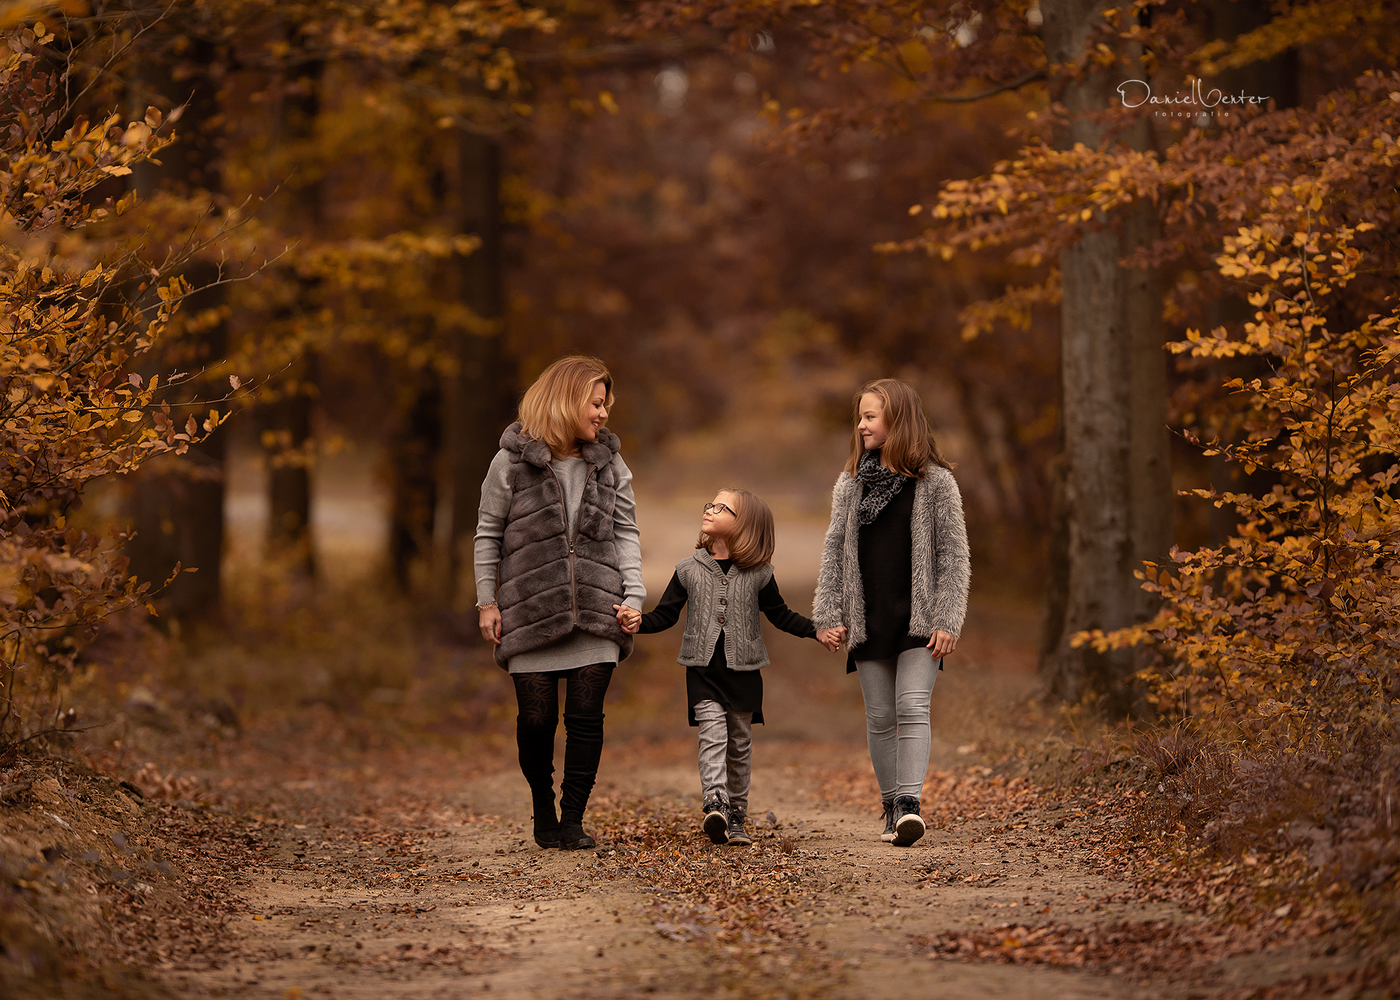 Autumn Walks by Daniel Venter